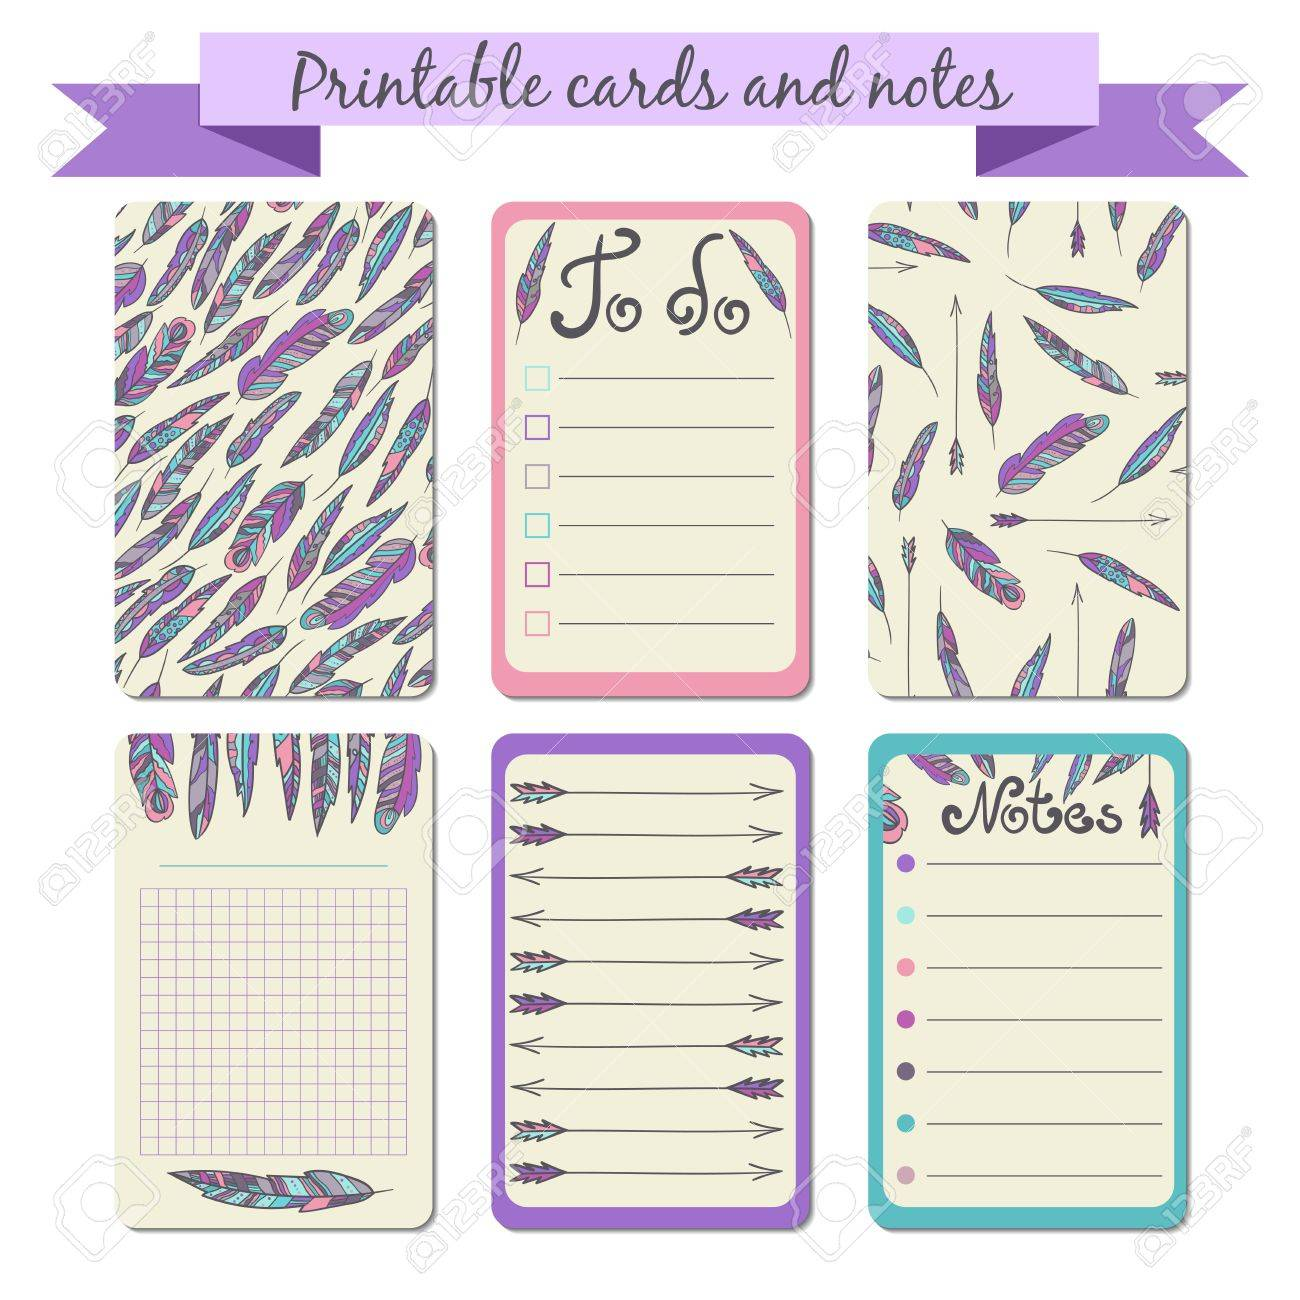 printable journalist cards notes in bohemian style to do list